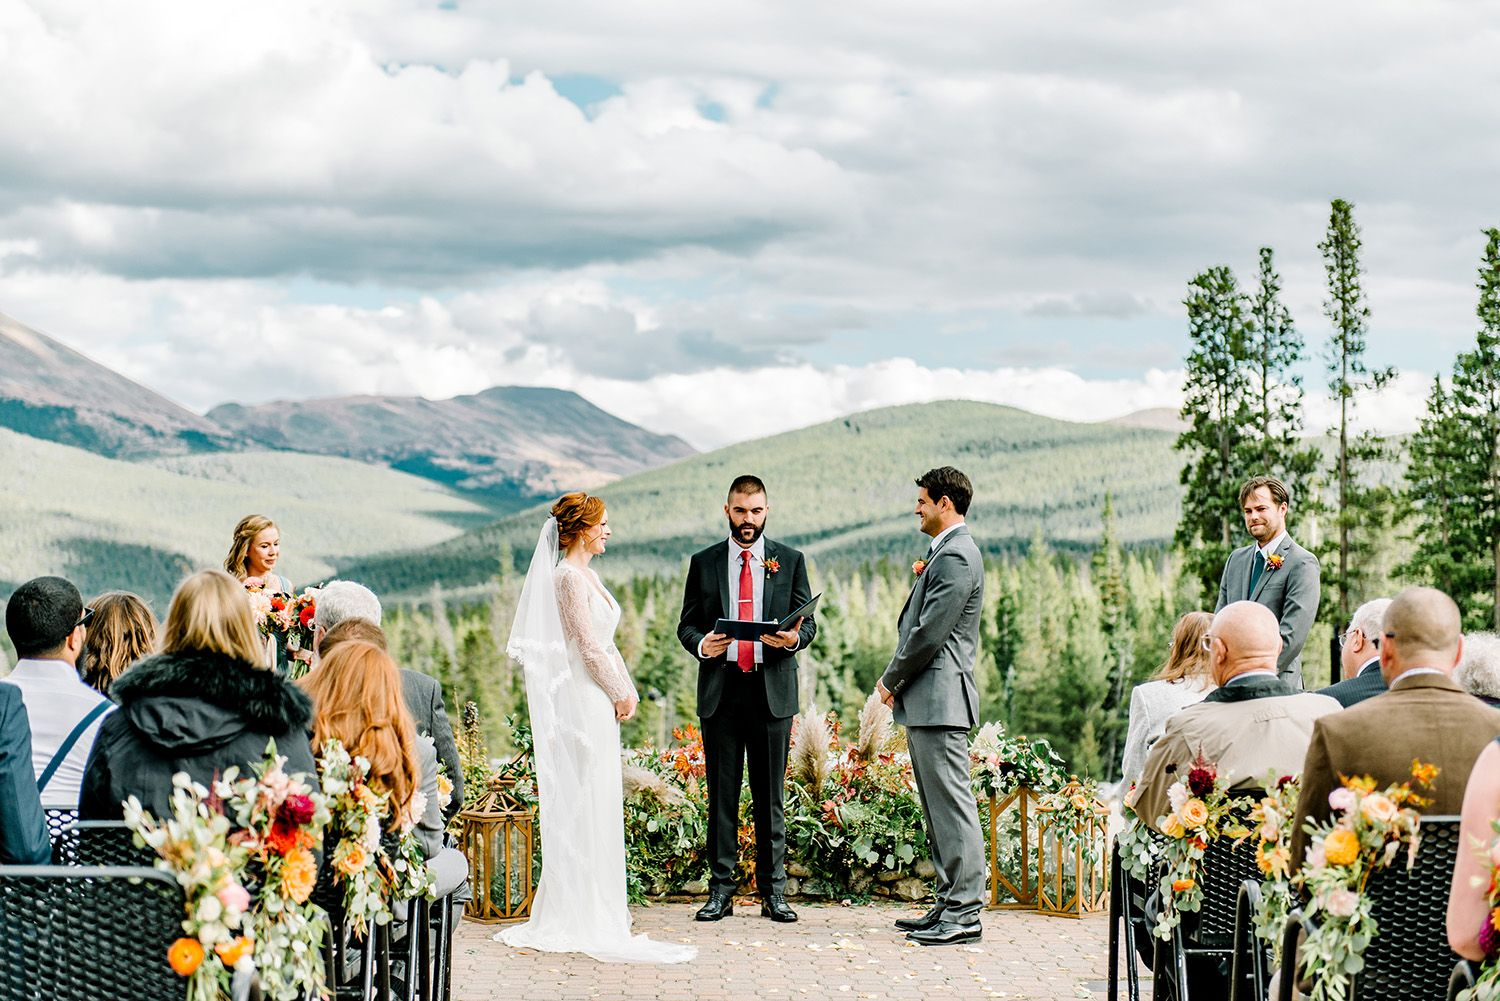 This Colorful Colorado Wedding was All About the Mountains